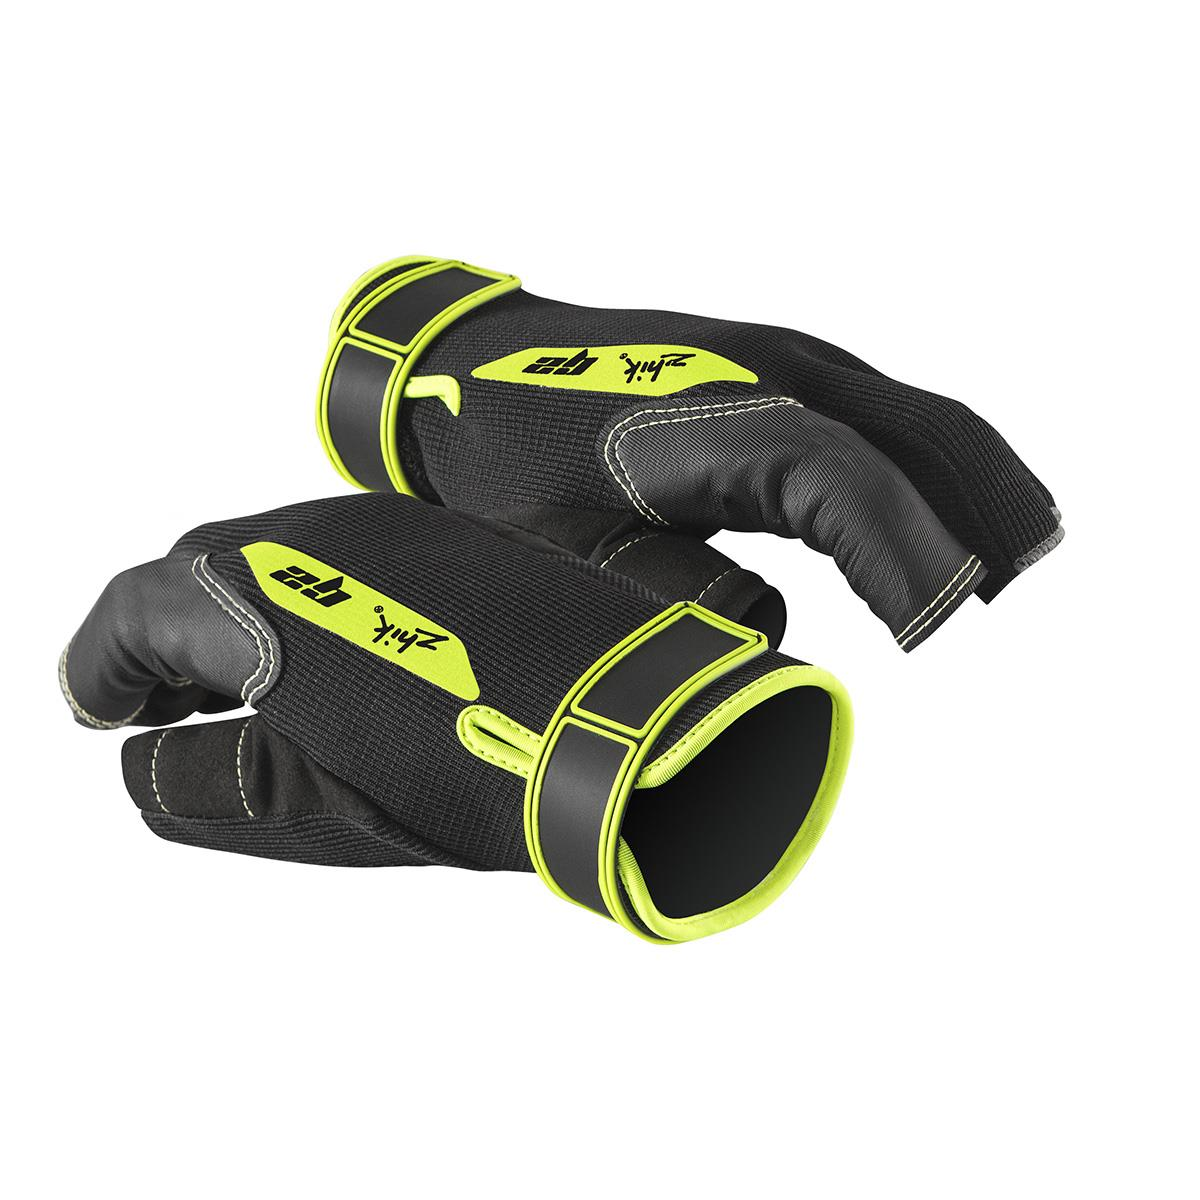 Zhik Short Finger G2 Sailing Gloves